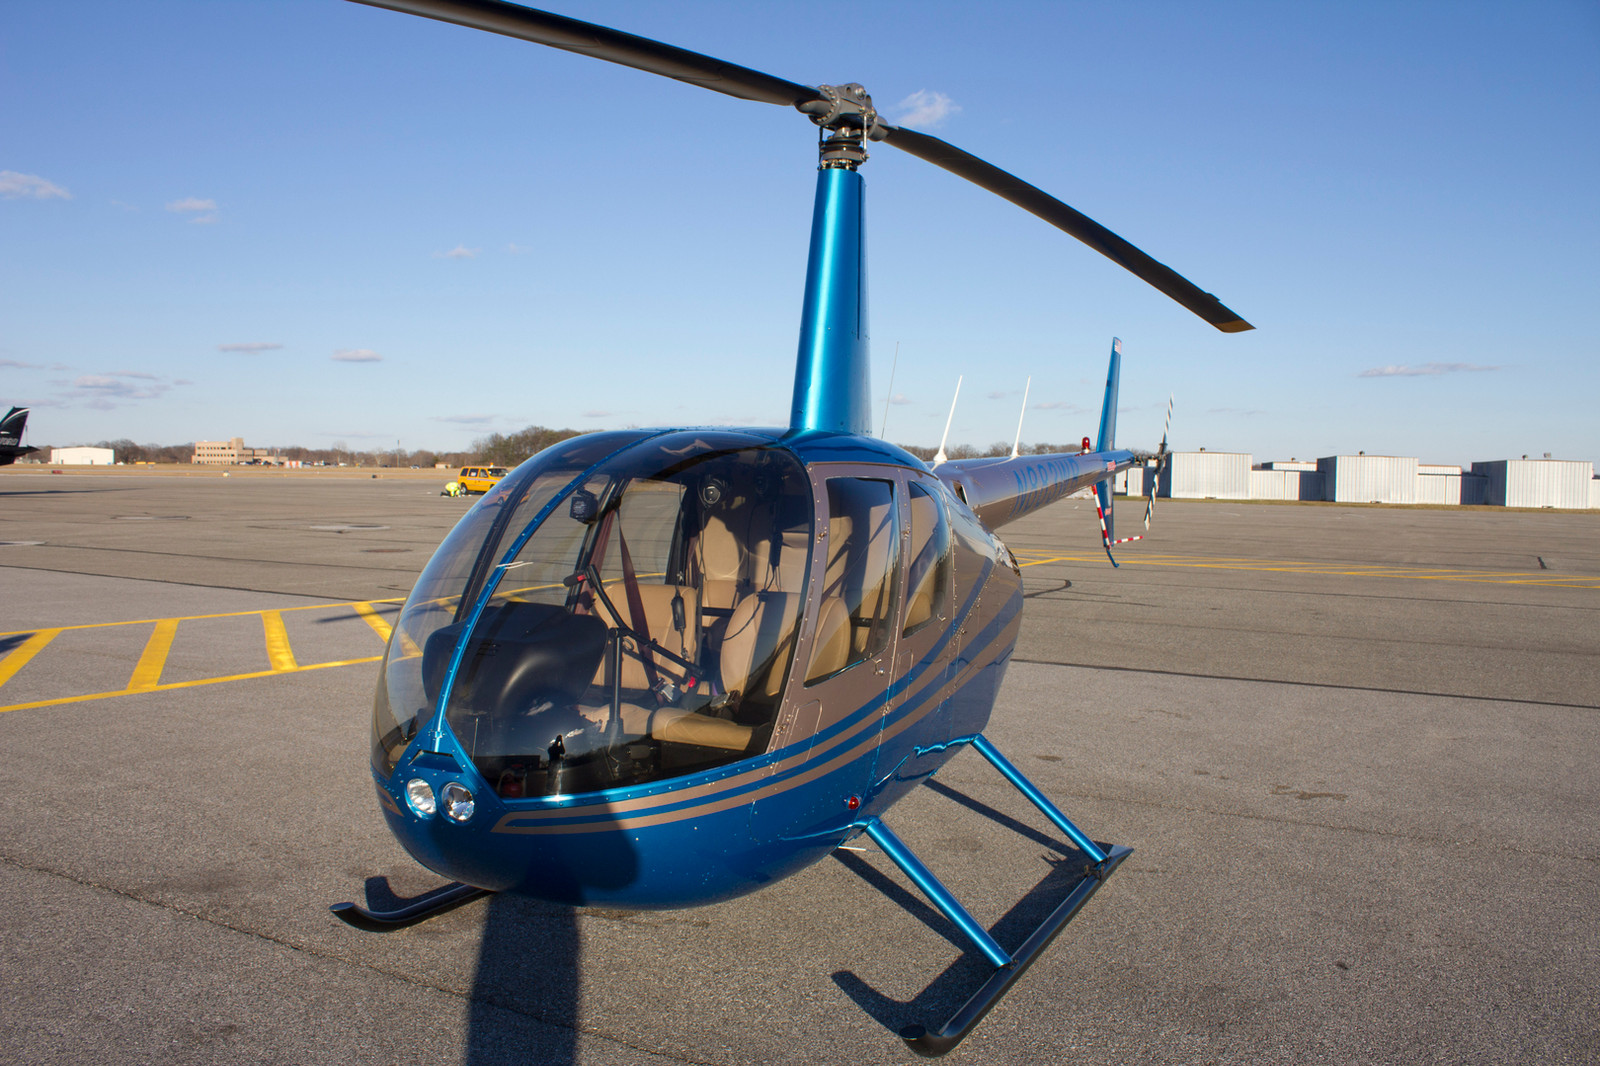 Flight School Maryland Flying Classes Aviation Aircraft Charter Services Management Helicopters Gallery Apply To Fly